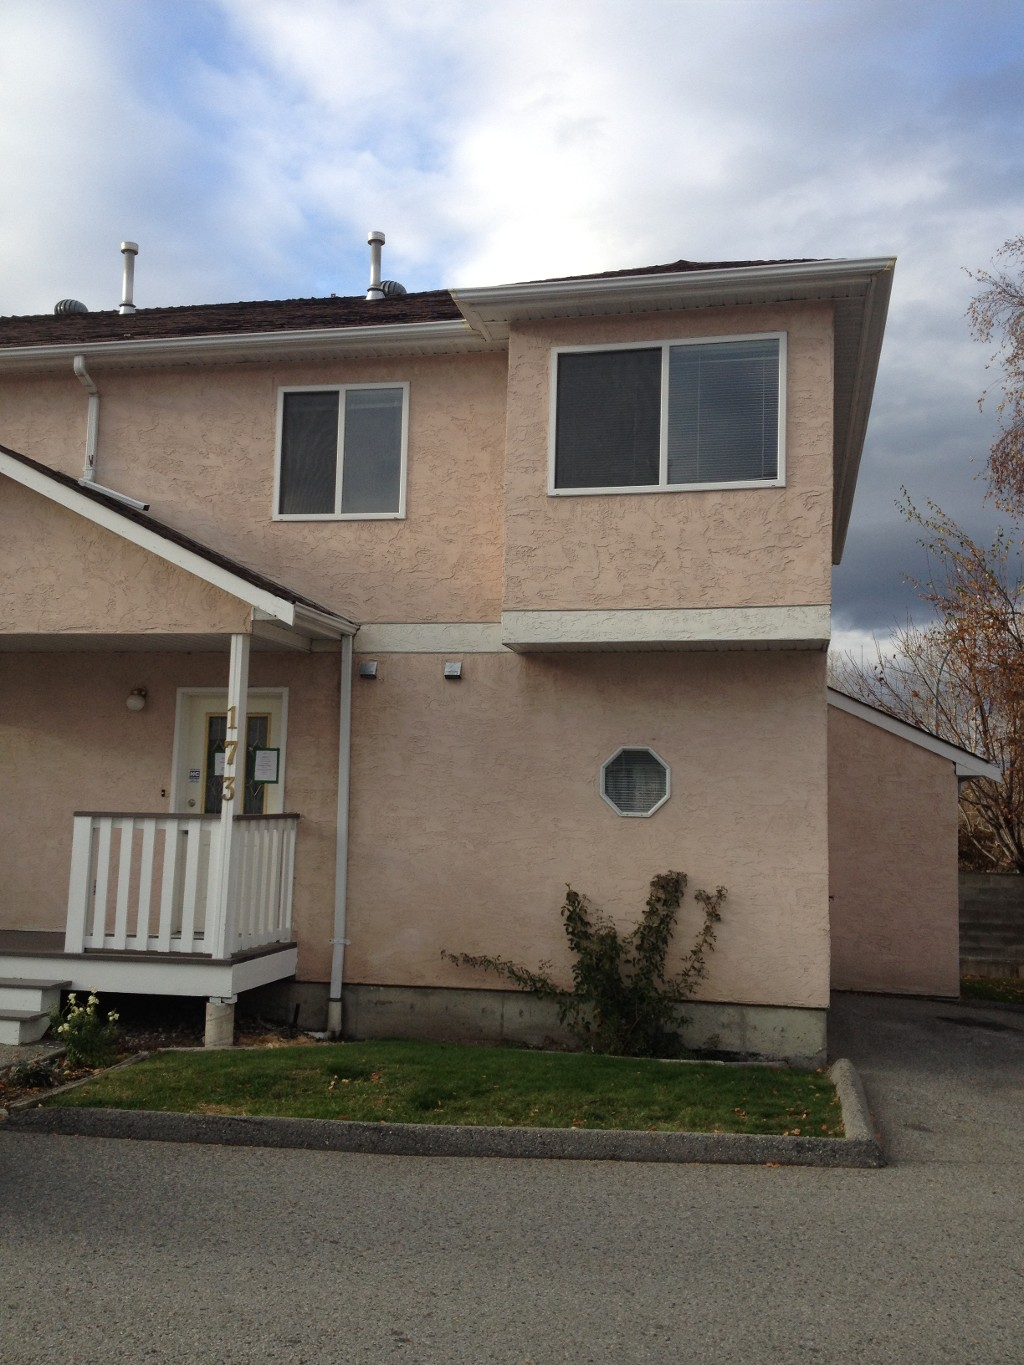 Main Photo: 173 - 1458 Penticton Avenue in Penticton: Columbia/Duncan Residential Attached for sale : MLS® # 141600